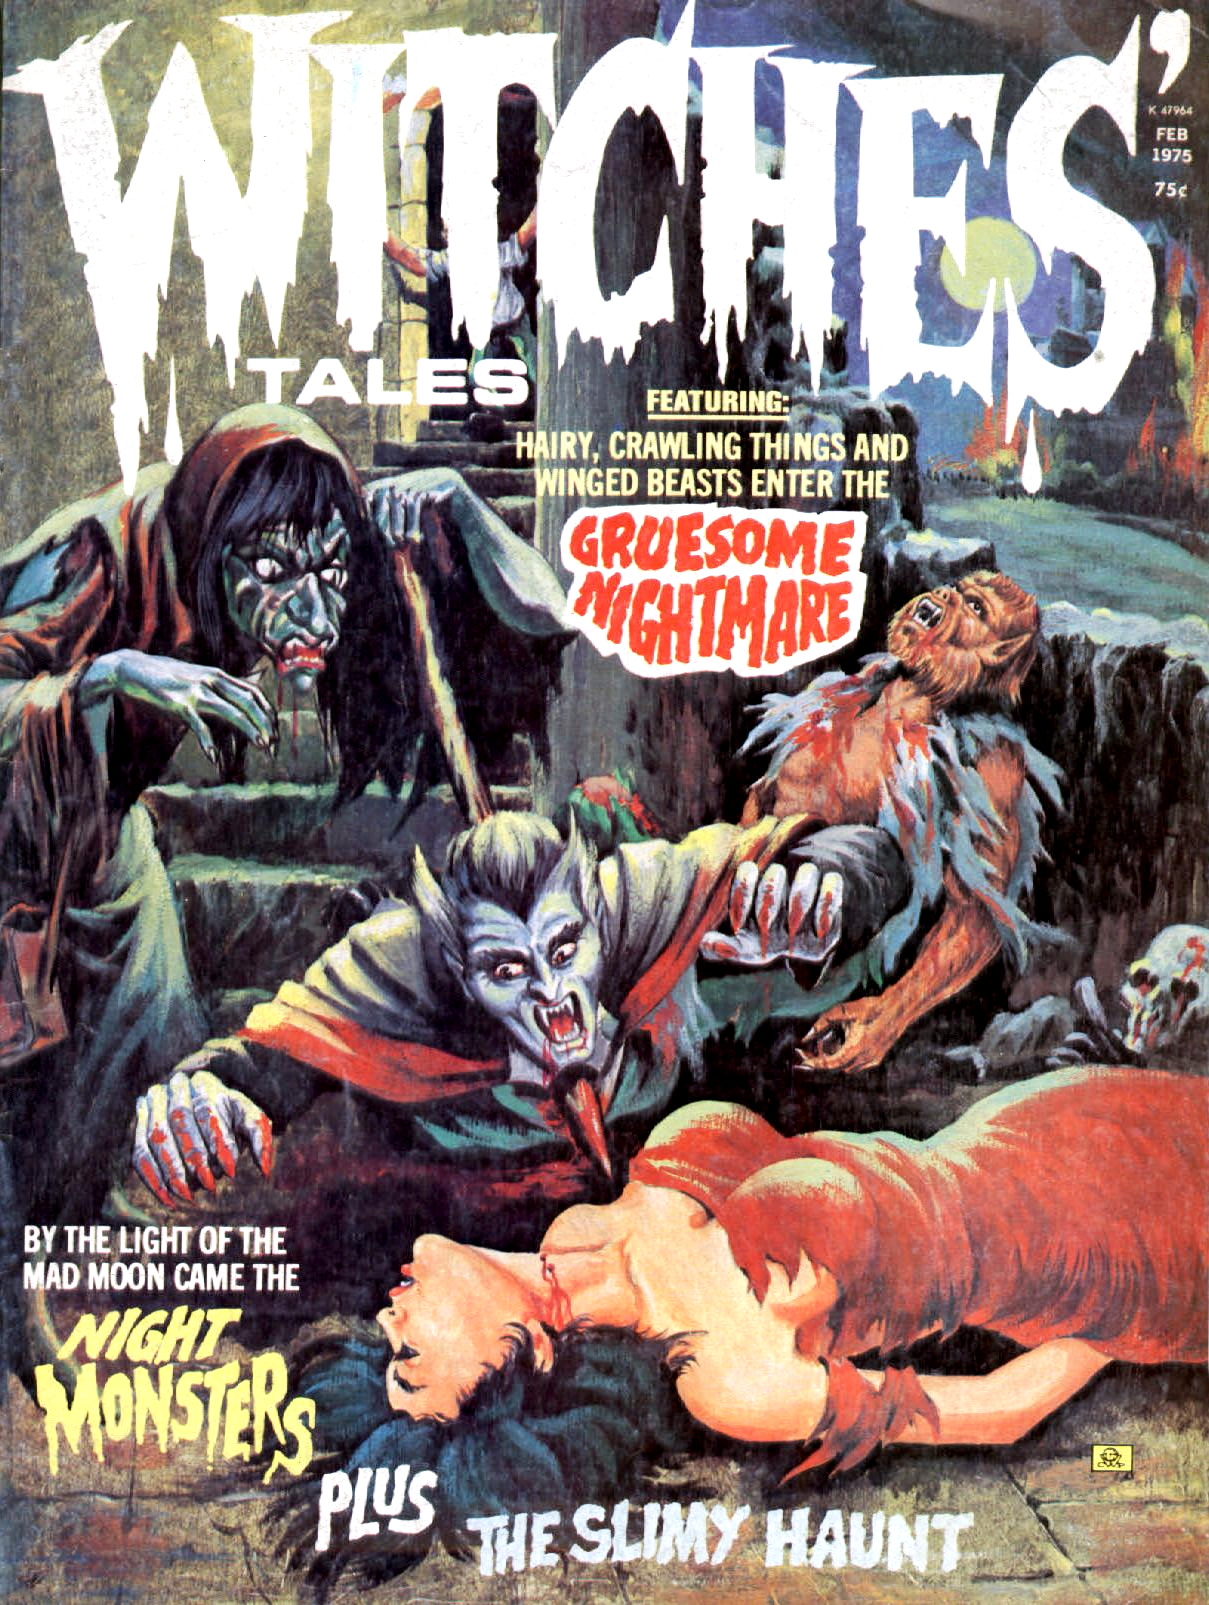 Witches' Tales Vol. 7 #1 (Eerie Publications 1975)